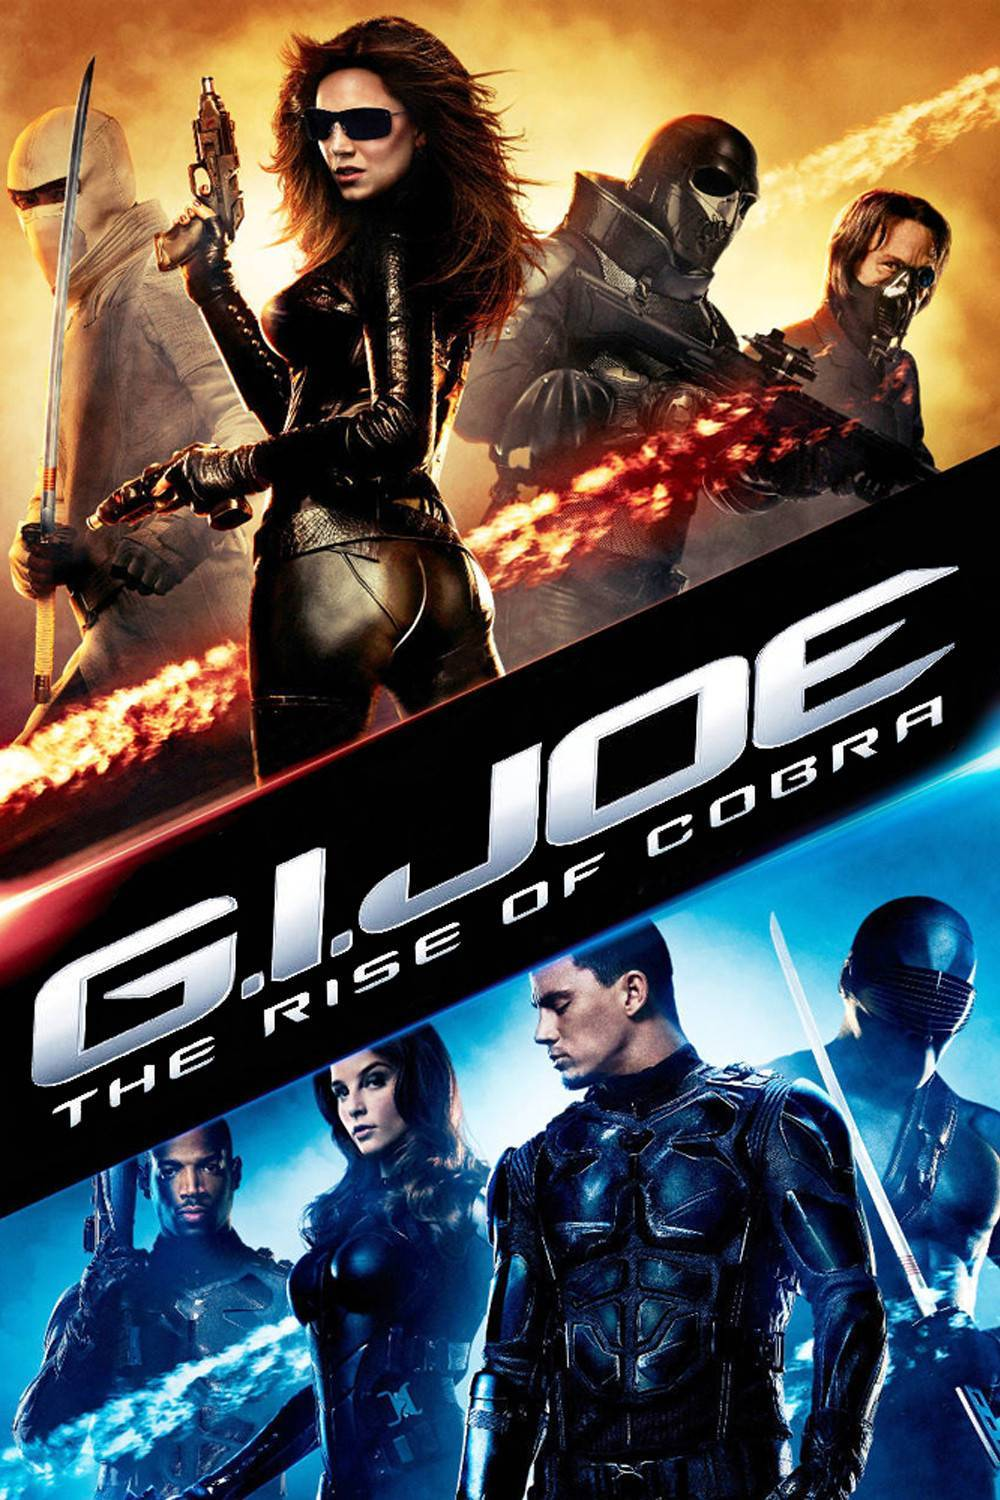 G.I. Joe The Rise of Cobra movie poster in teal and orange coloration